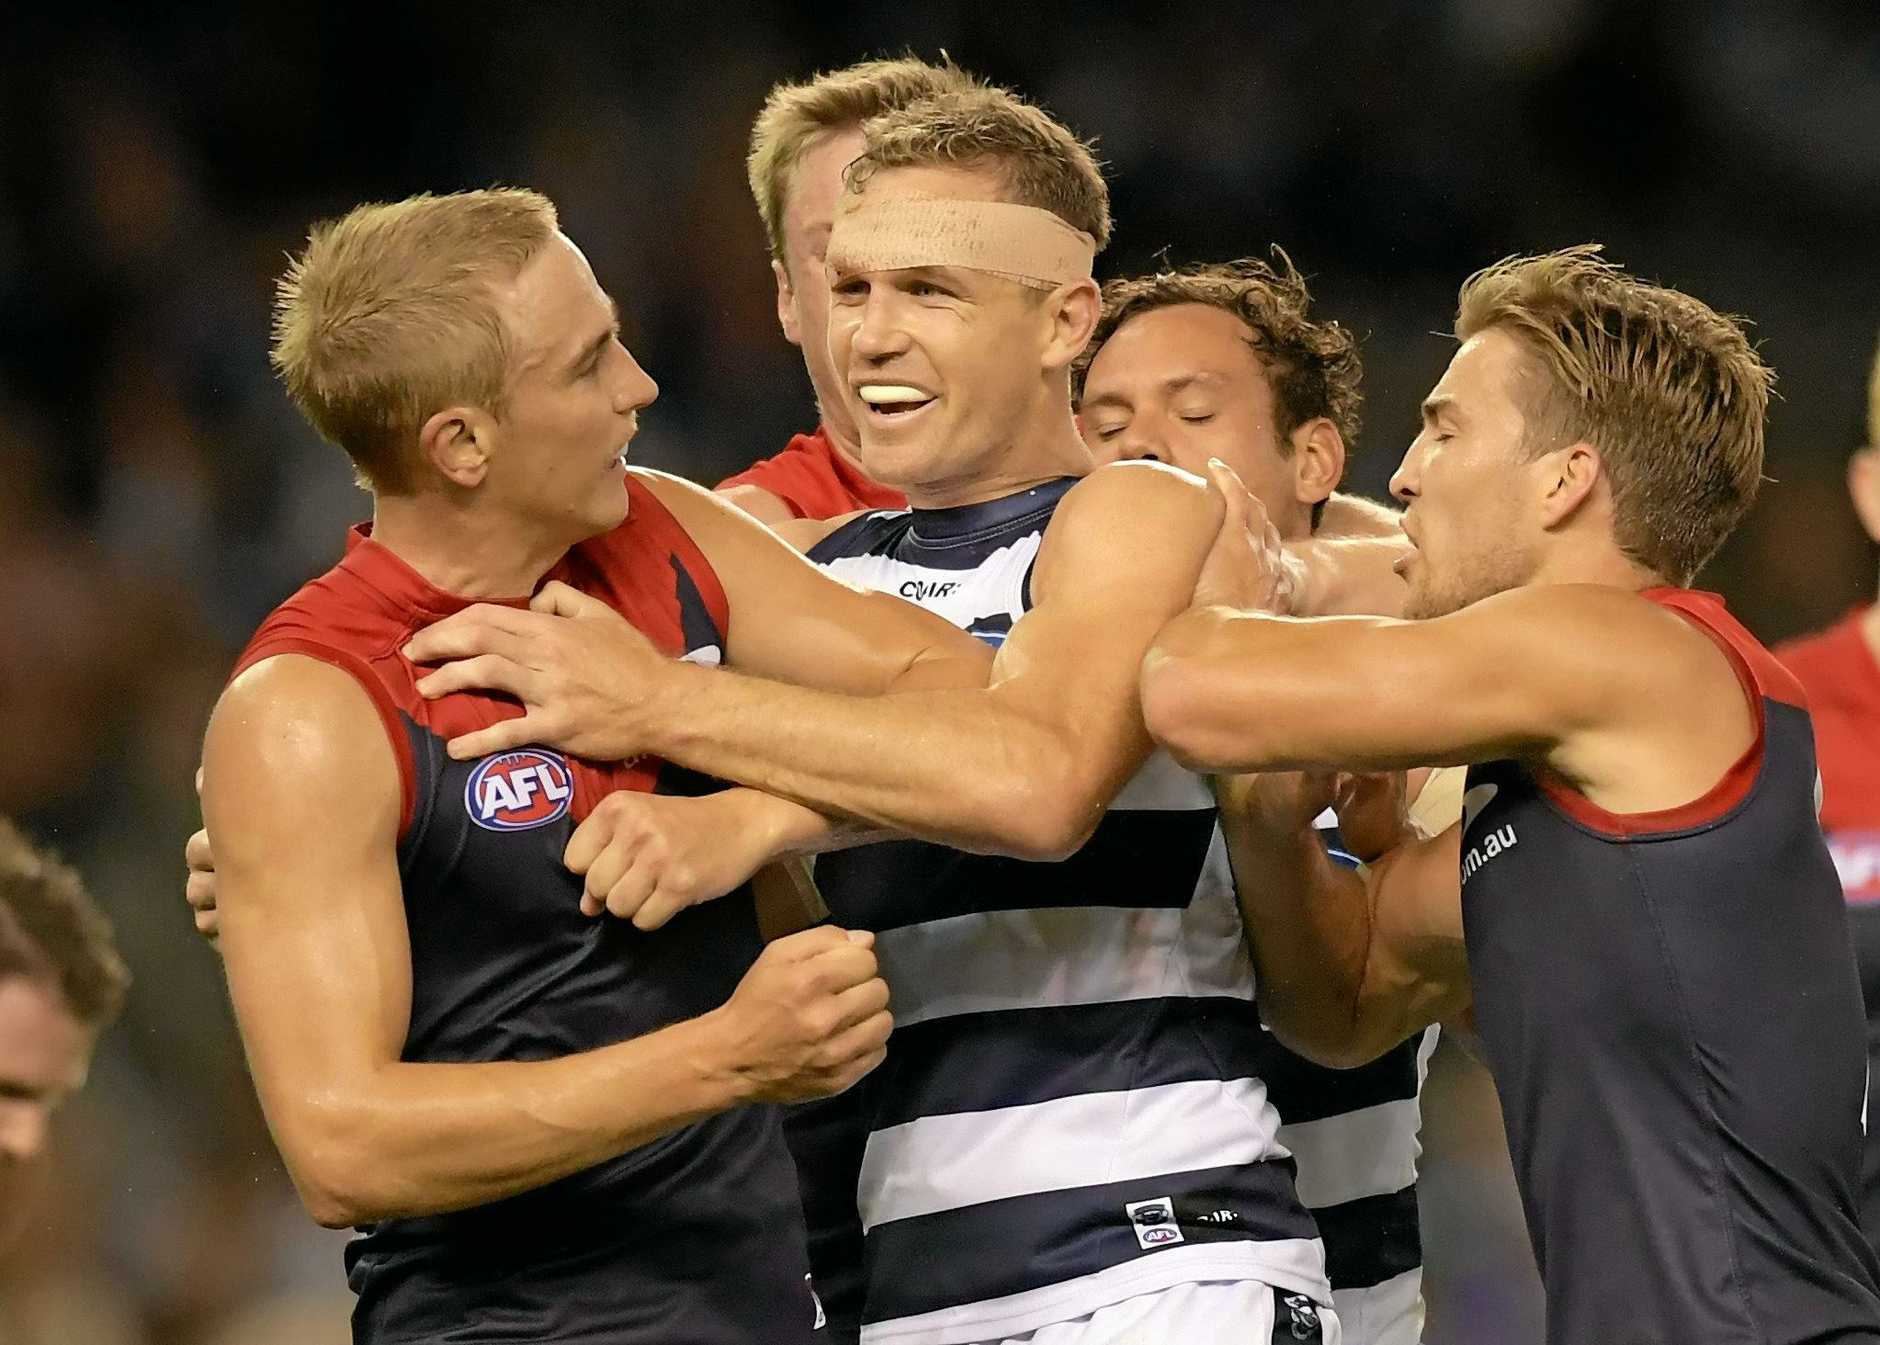 A fight breaks out between Joel Selwood of the Cats (right) and Bernie Vince of the Demons.